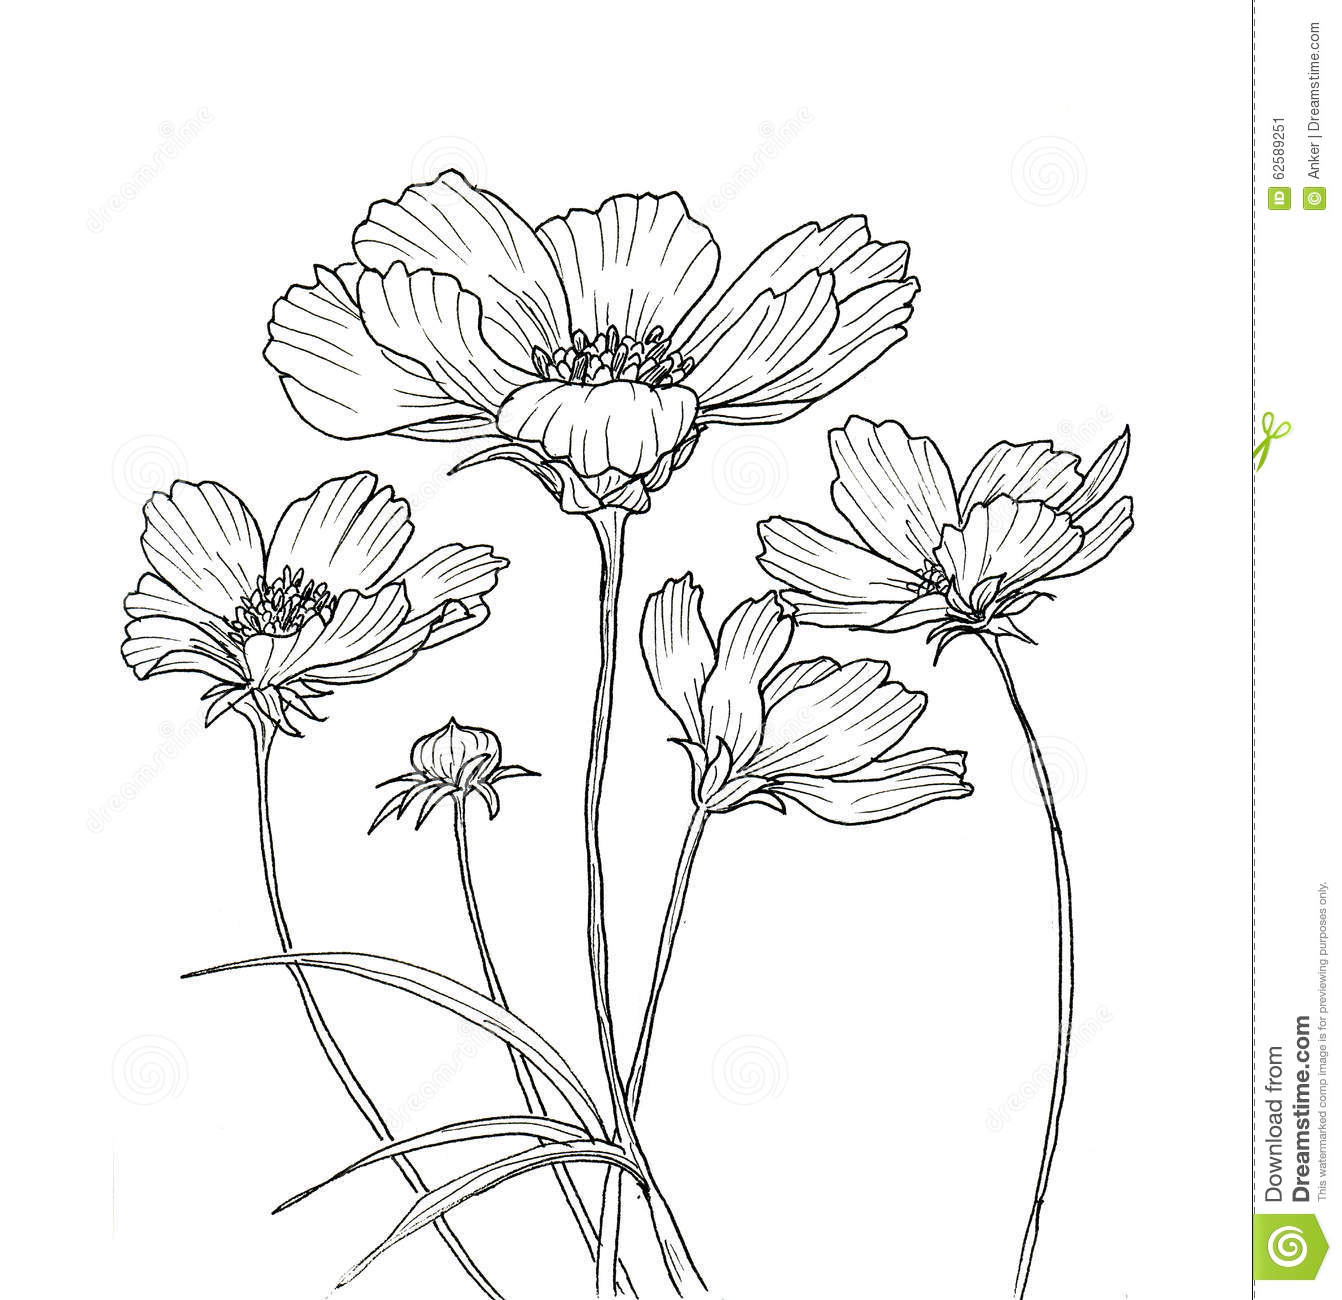 Line Art Flowers Images : Line ink drawing of cosmos flower stock illustration